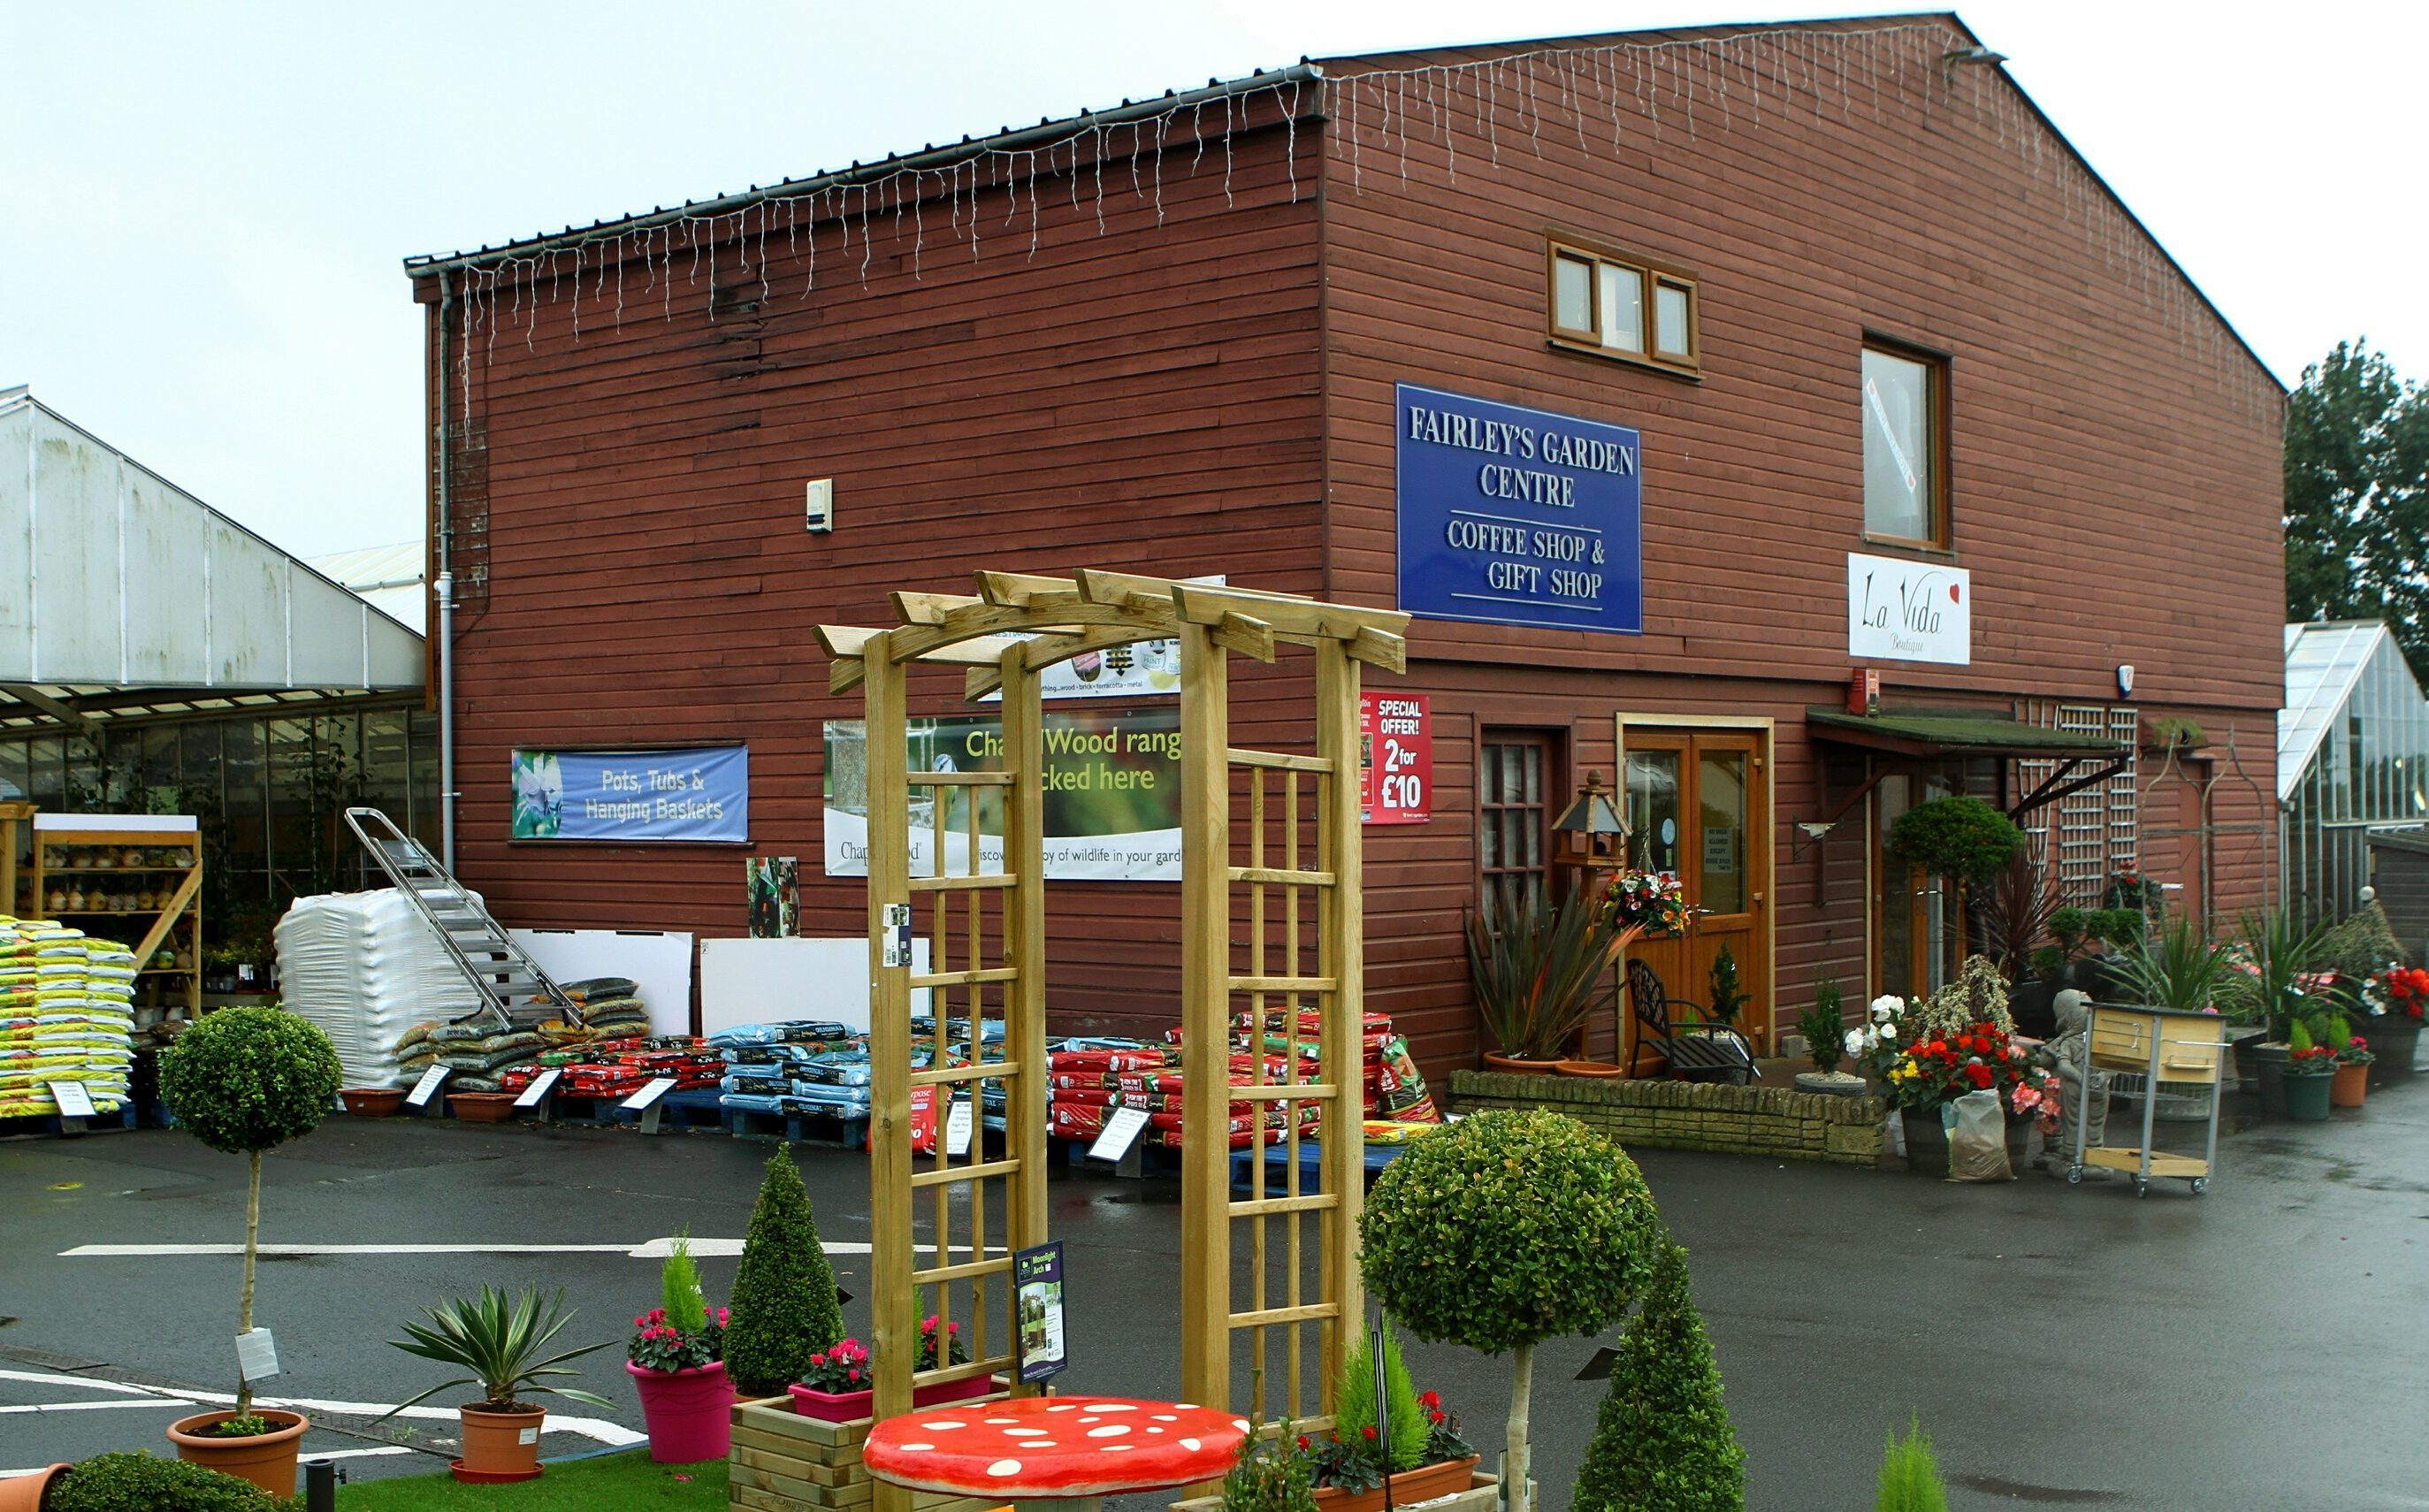 Fairley's Garden Centre in Cairneyhill, where fake notes were spotted.